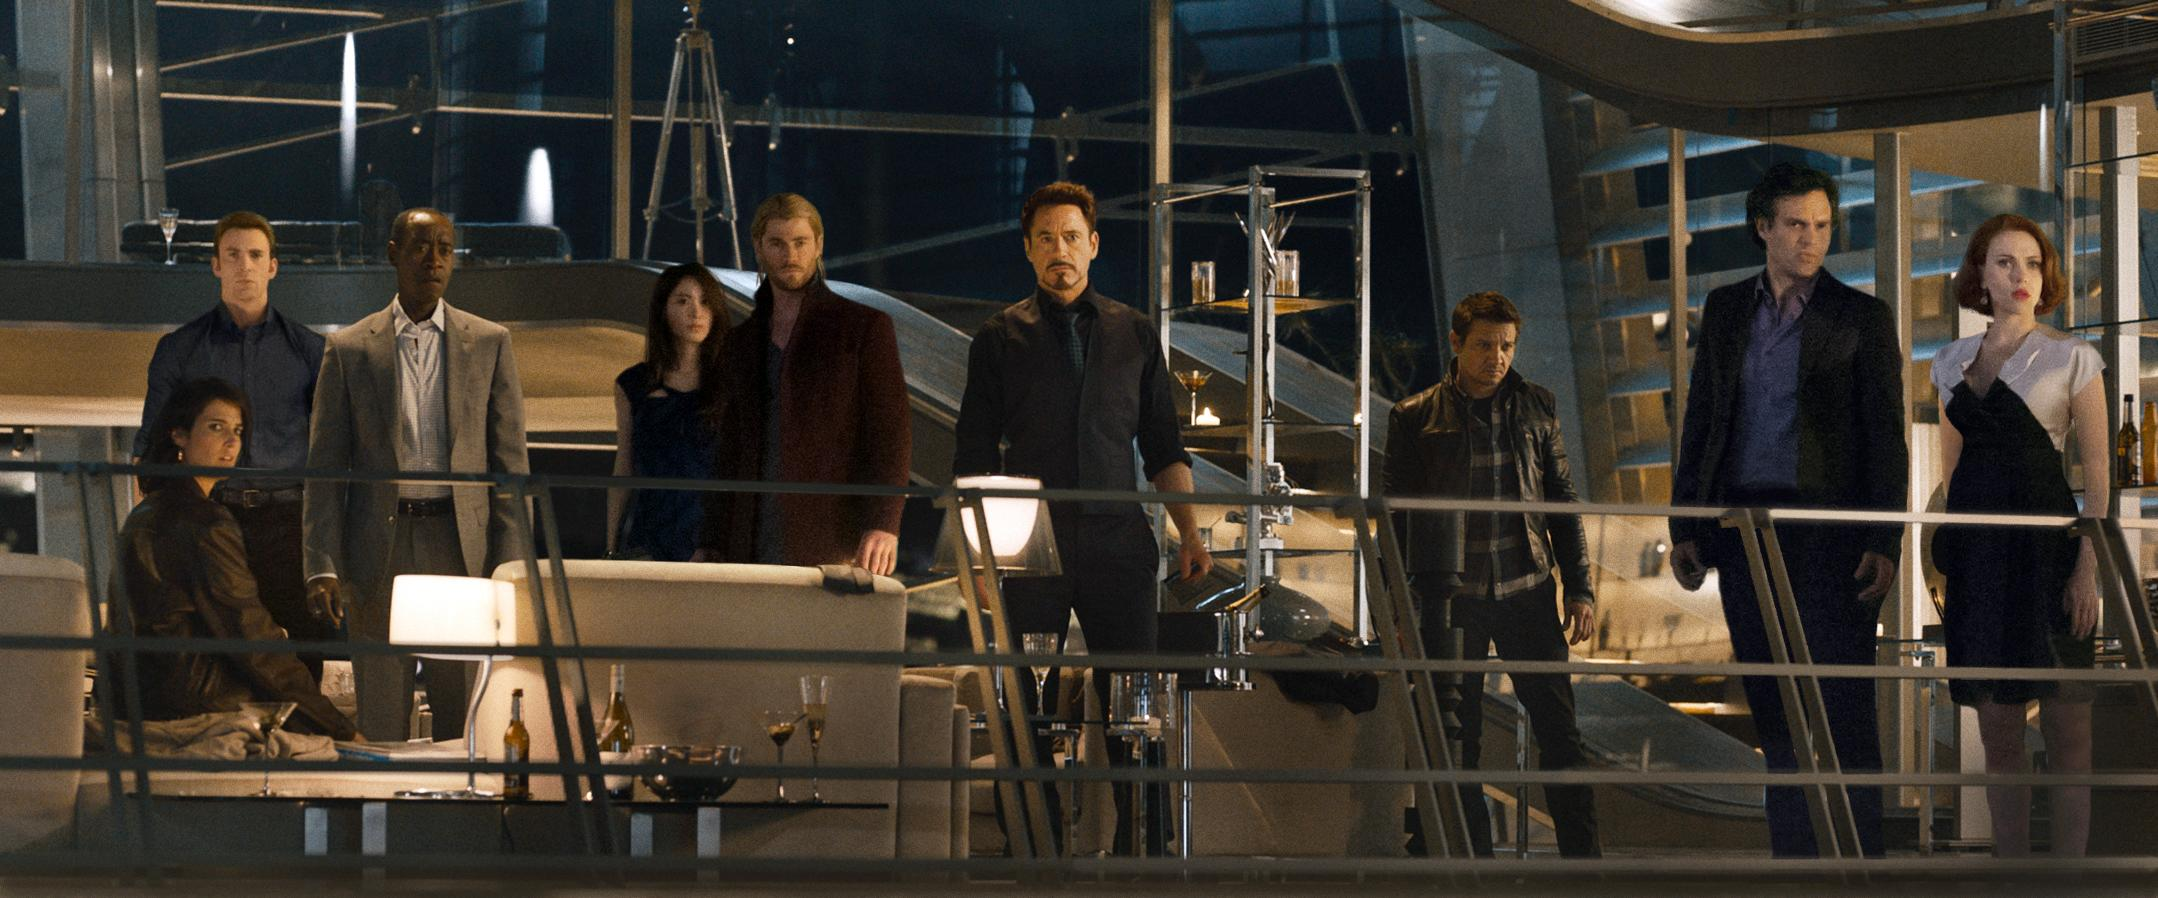 Review: 'Age of Ultron' is an Avengers overdose